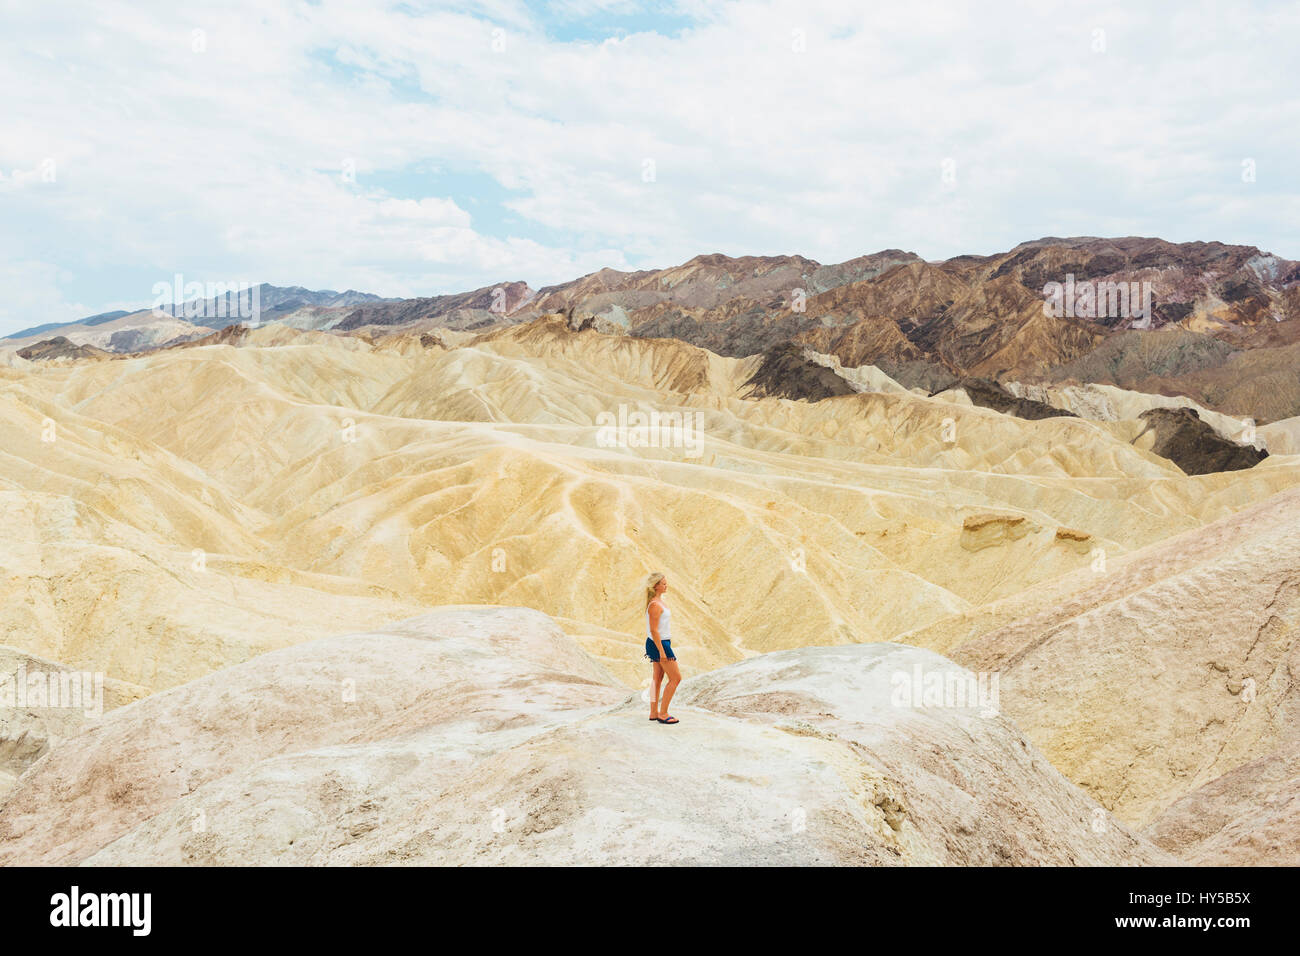 USA, California, Woman looking at view in Death Valley National Park - Stock Image